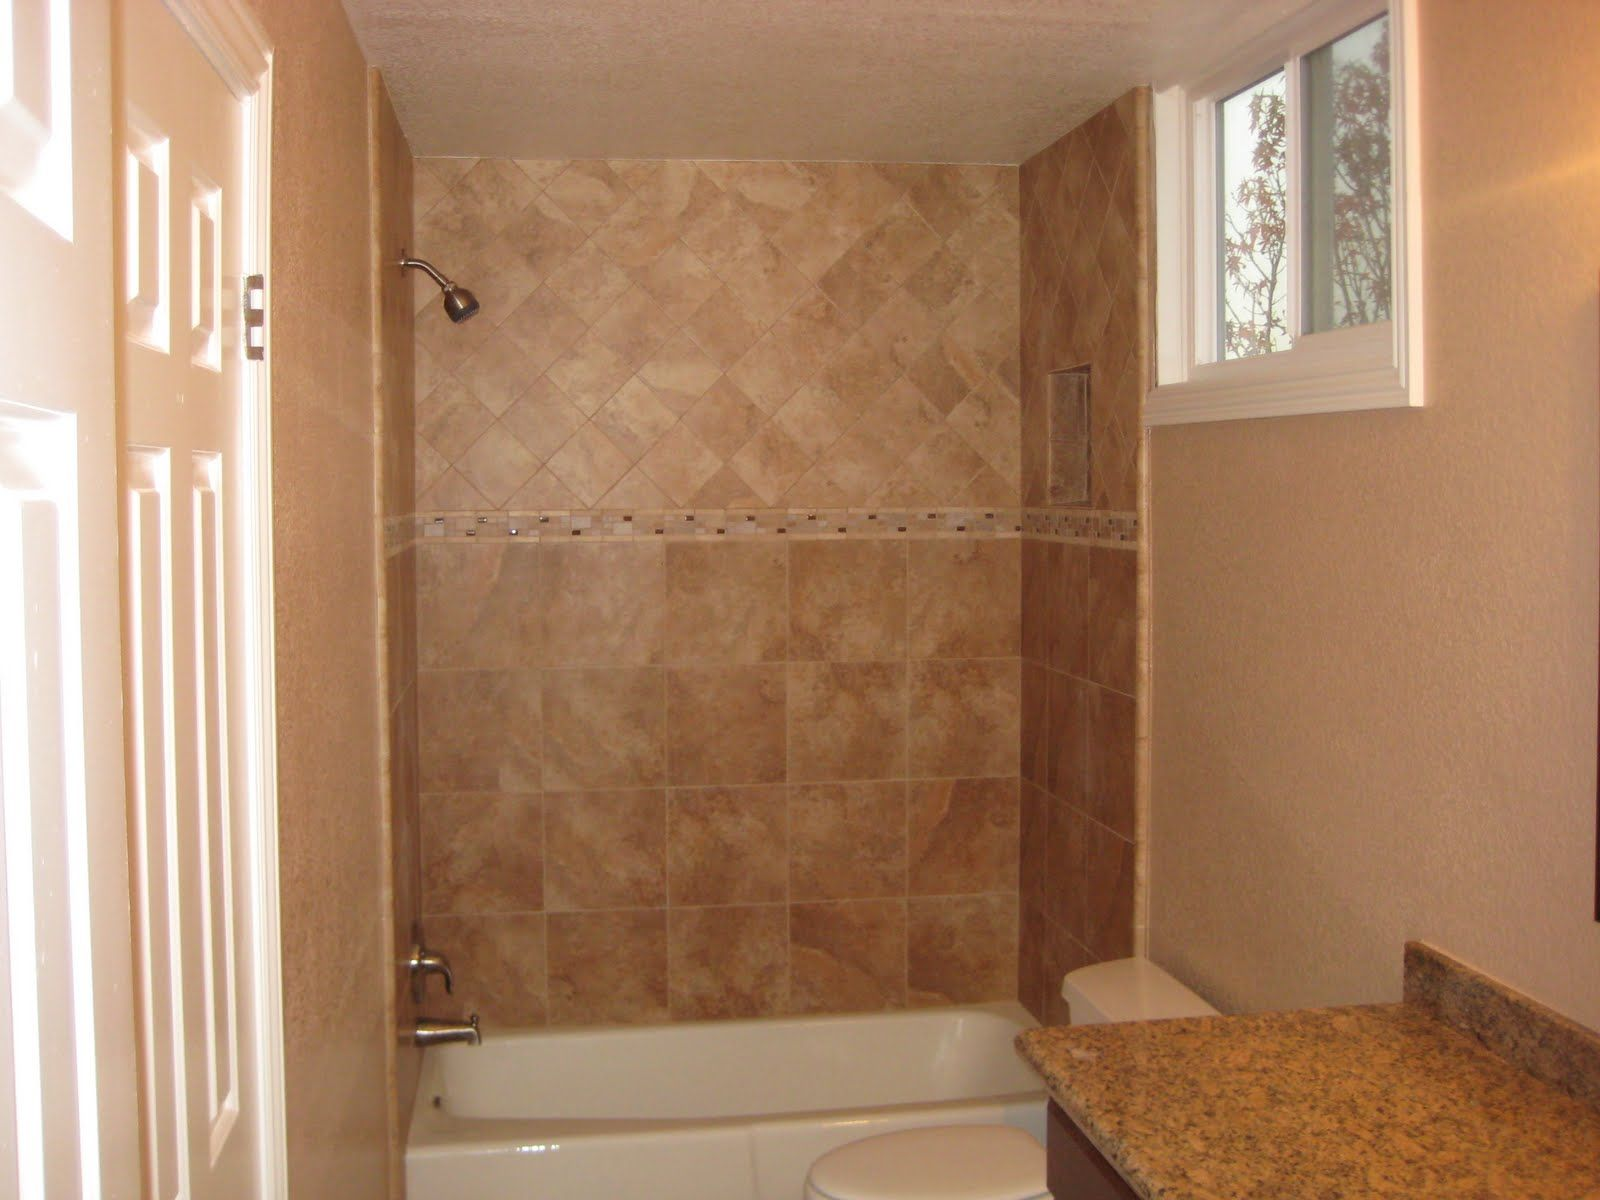 demo tile on floor and shower walls new vanity tub wall tile granit